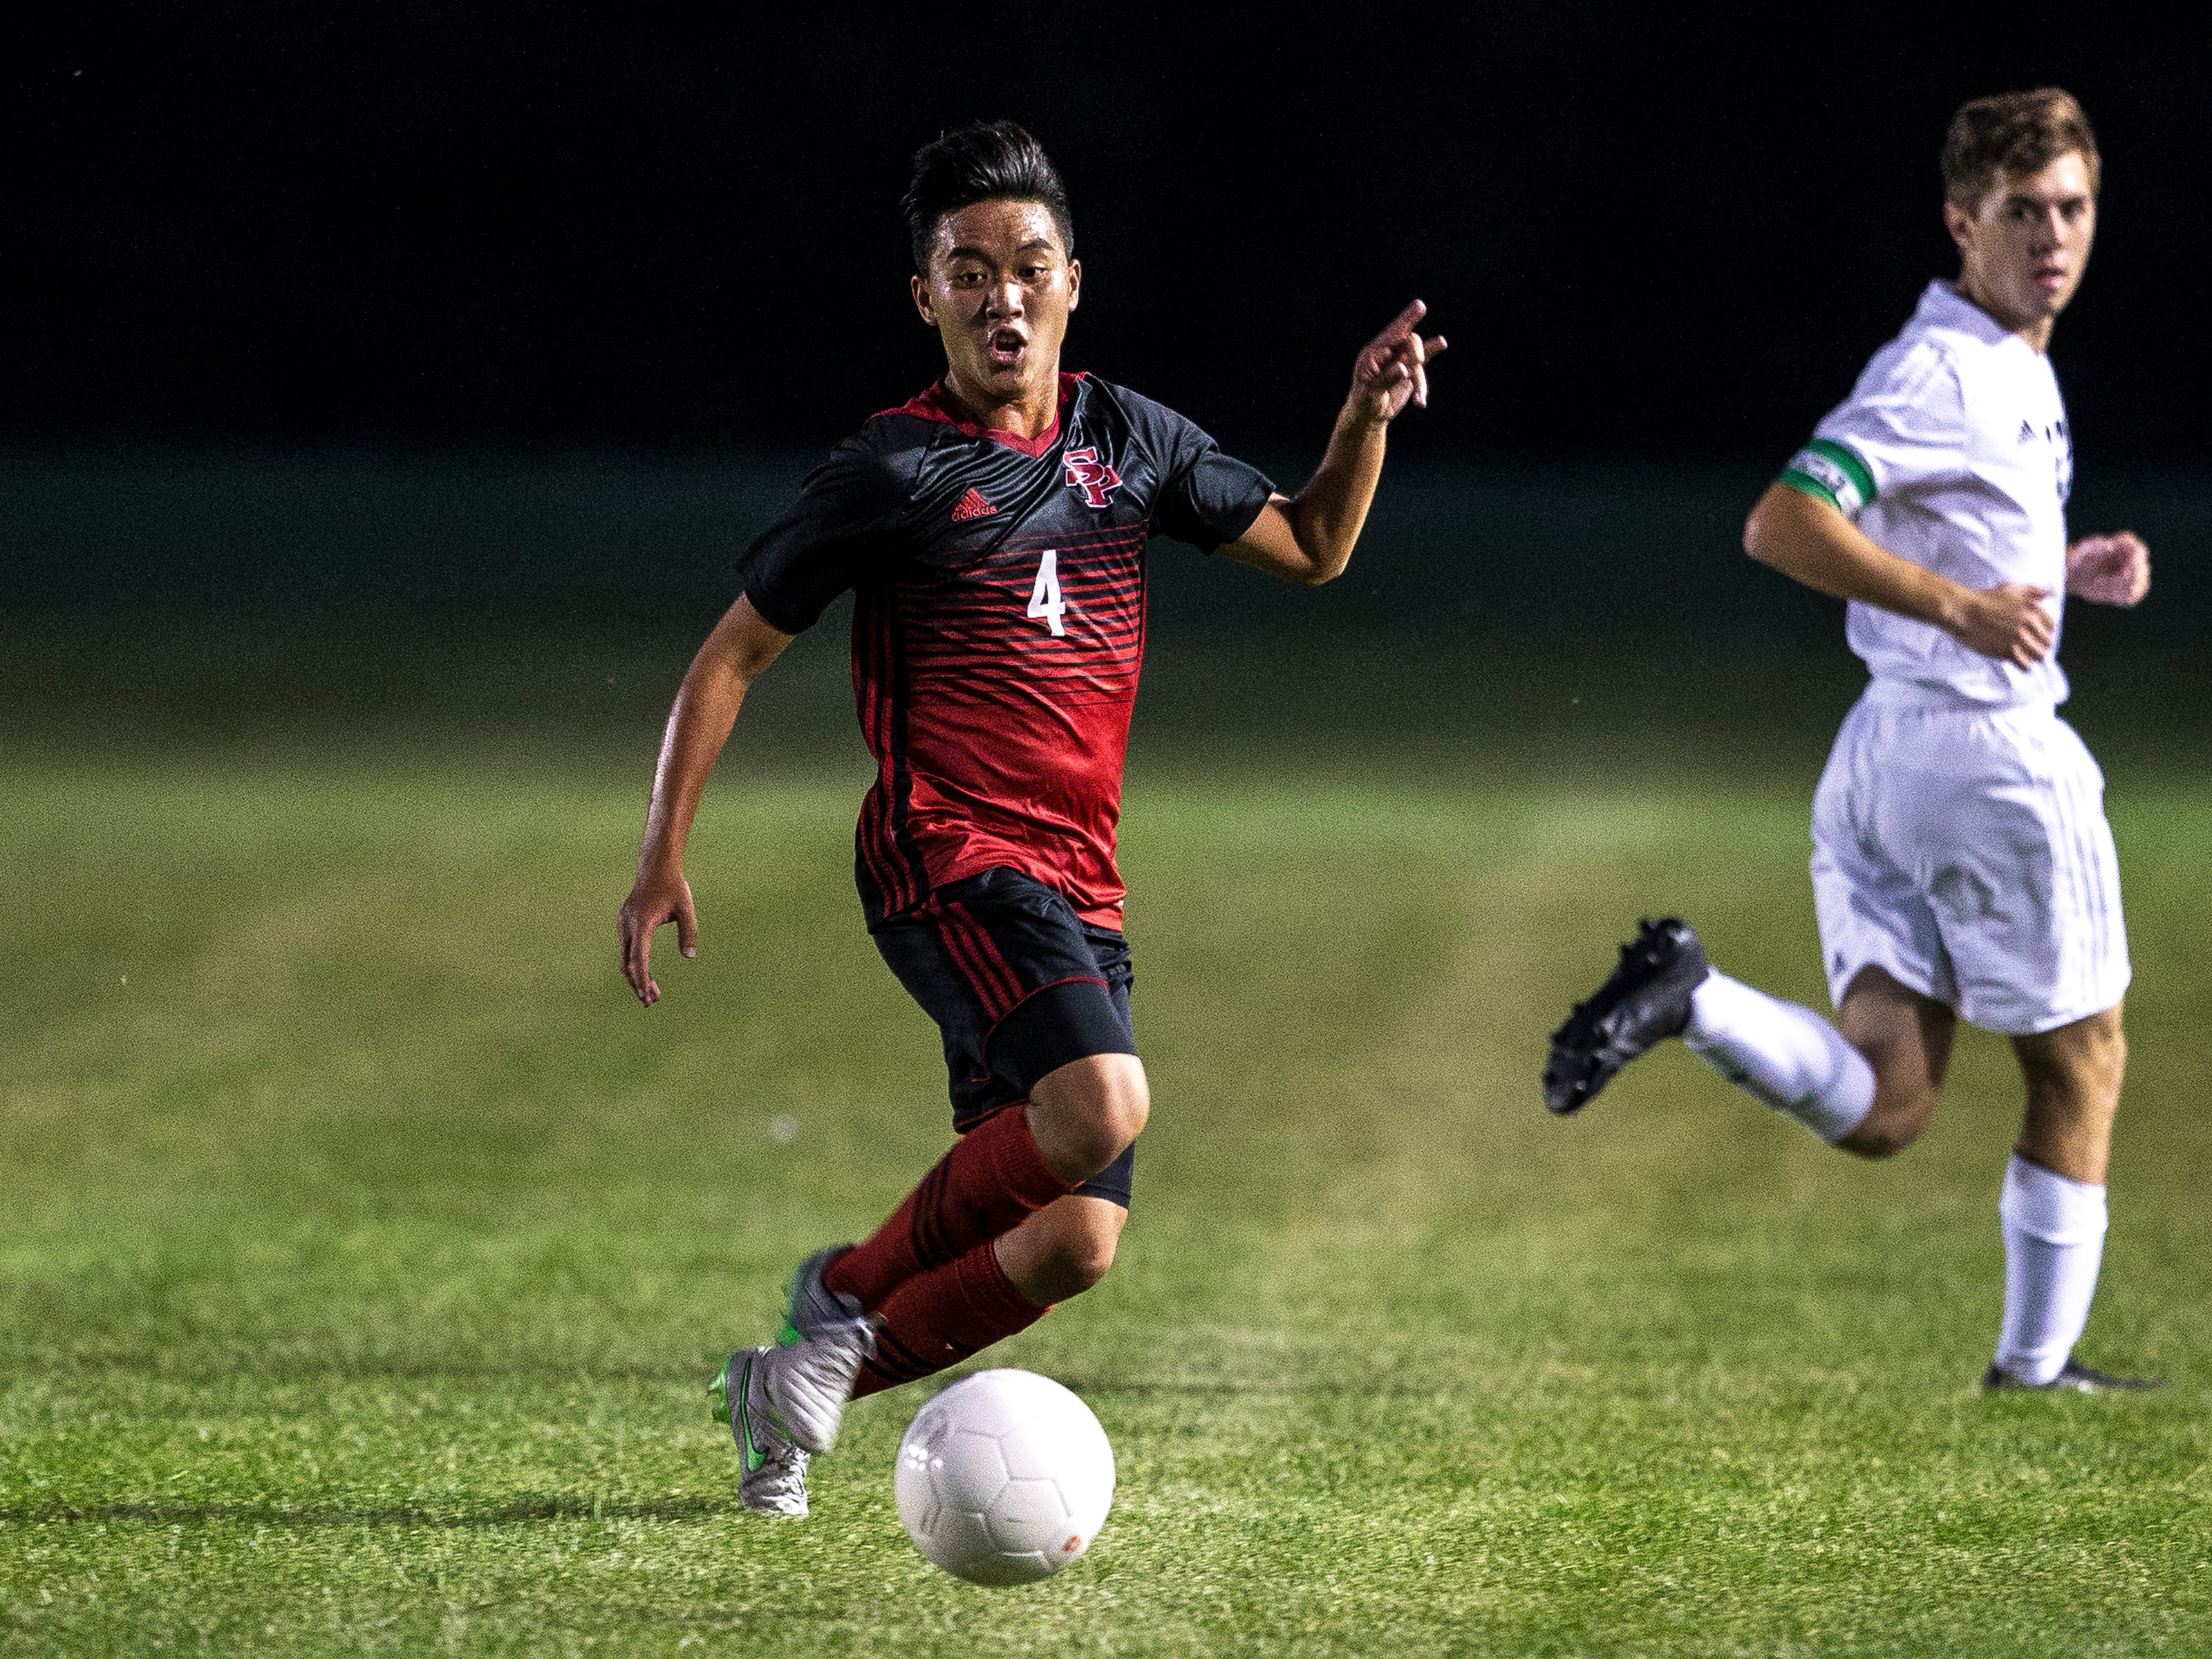 SPASH player Yia Yang moves the ball down field during a soccer game between SPASH and D.C. Everest in Stevens Point, Wis., September 13, 2018.